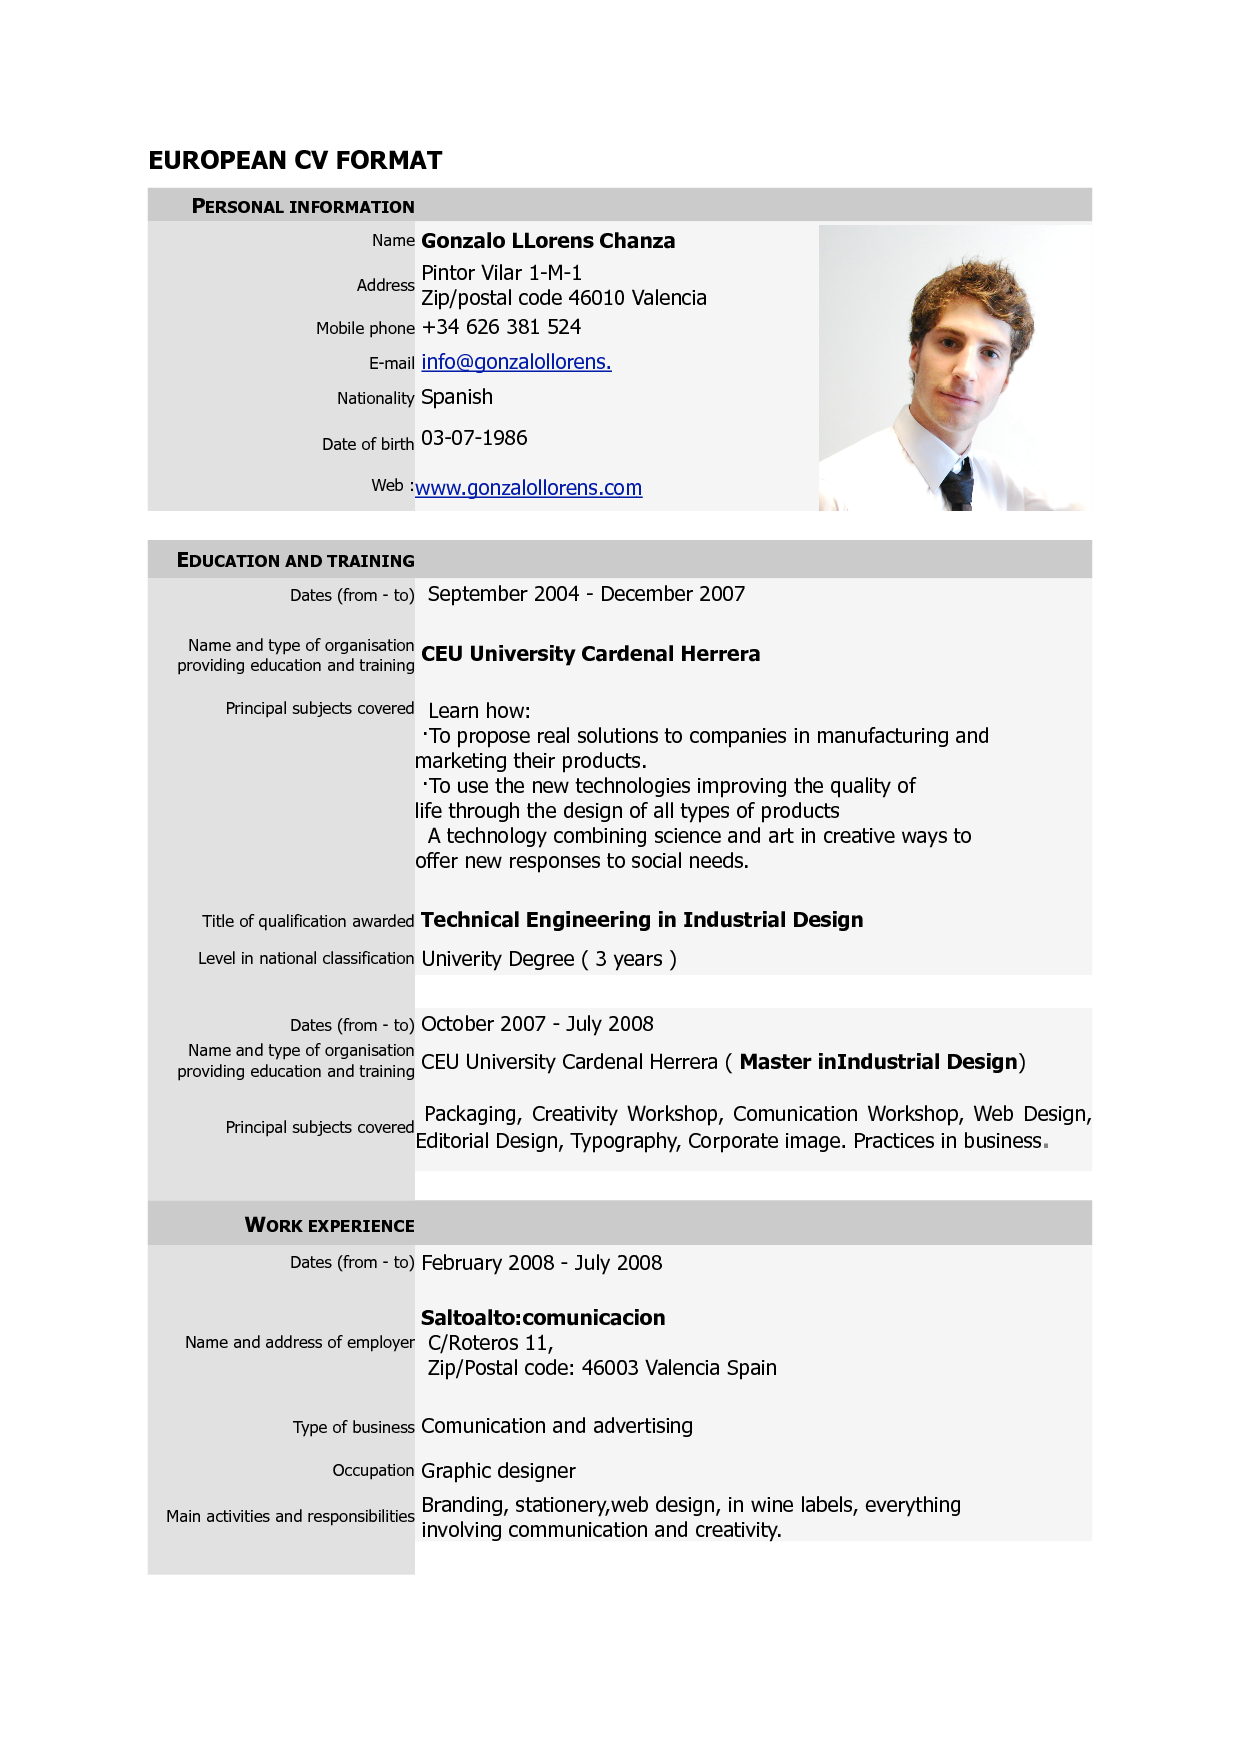 Resume Templates Tamu Awesome Free Download Cv Europass Pdf Europass Home European Cv Format Pdf